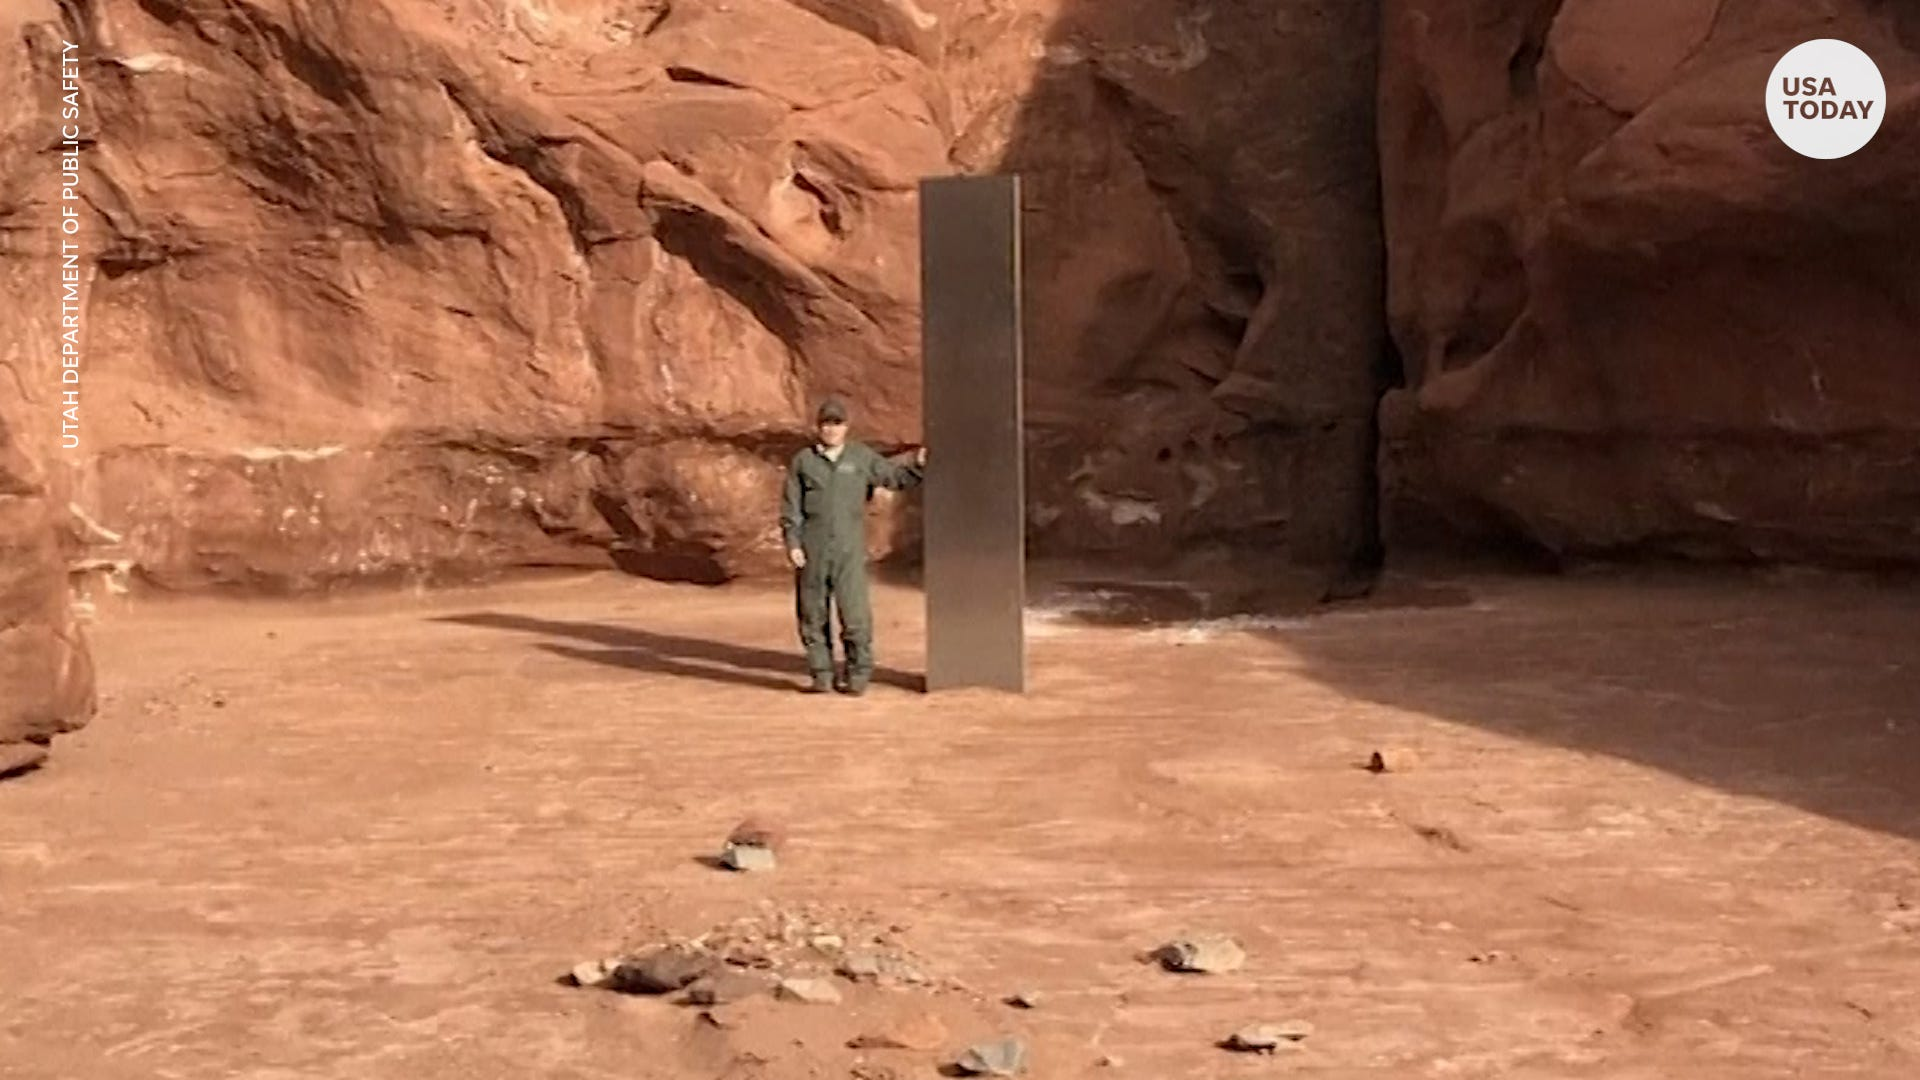 Monolith discovered in California, similar to metal structure found in Utah